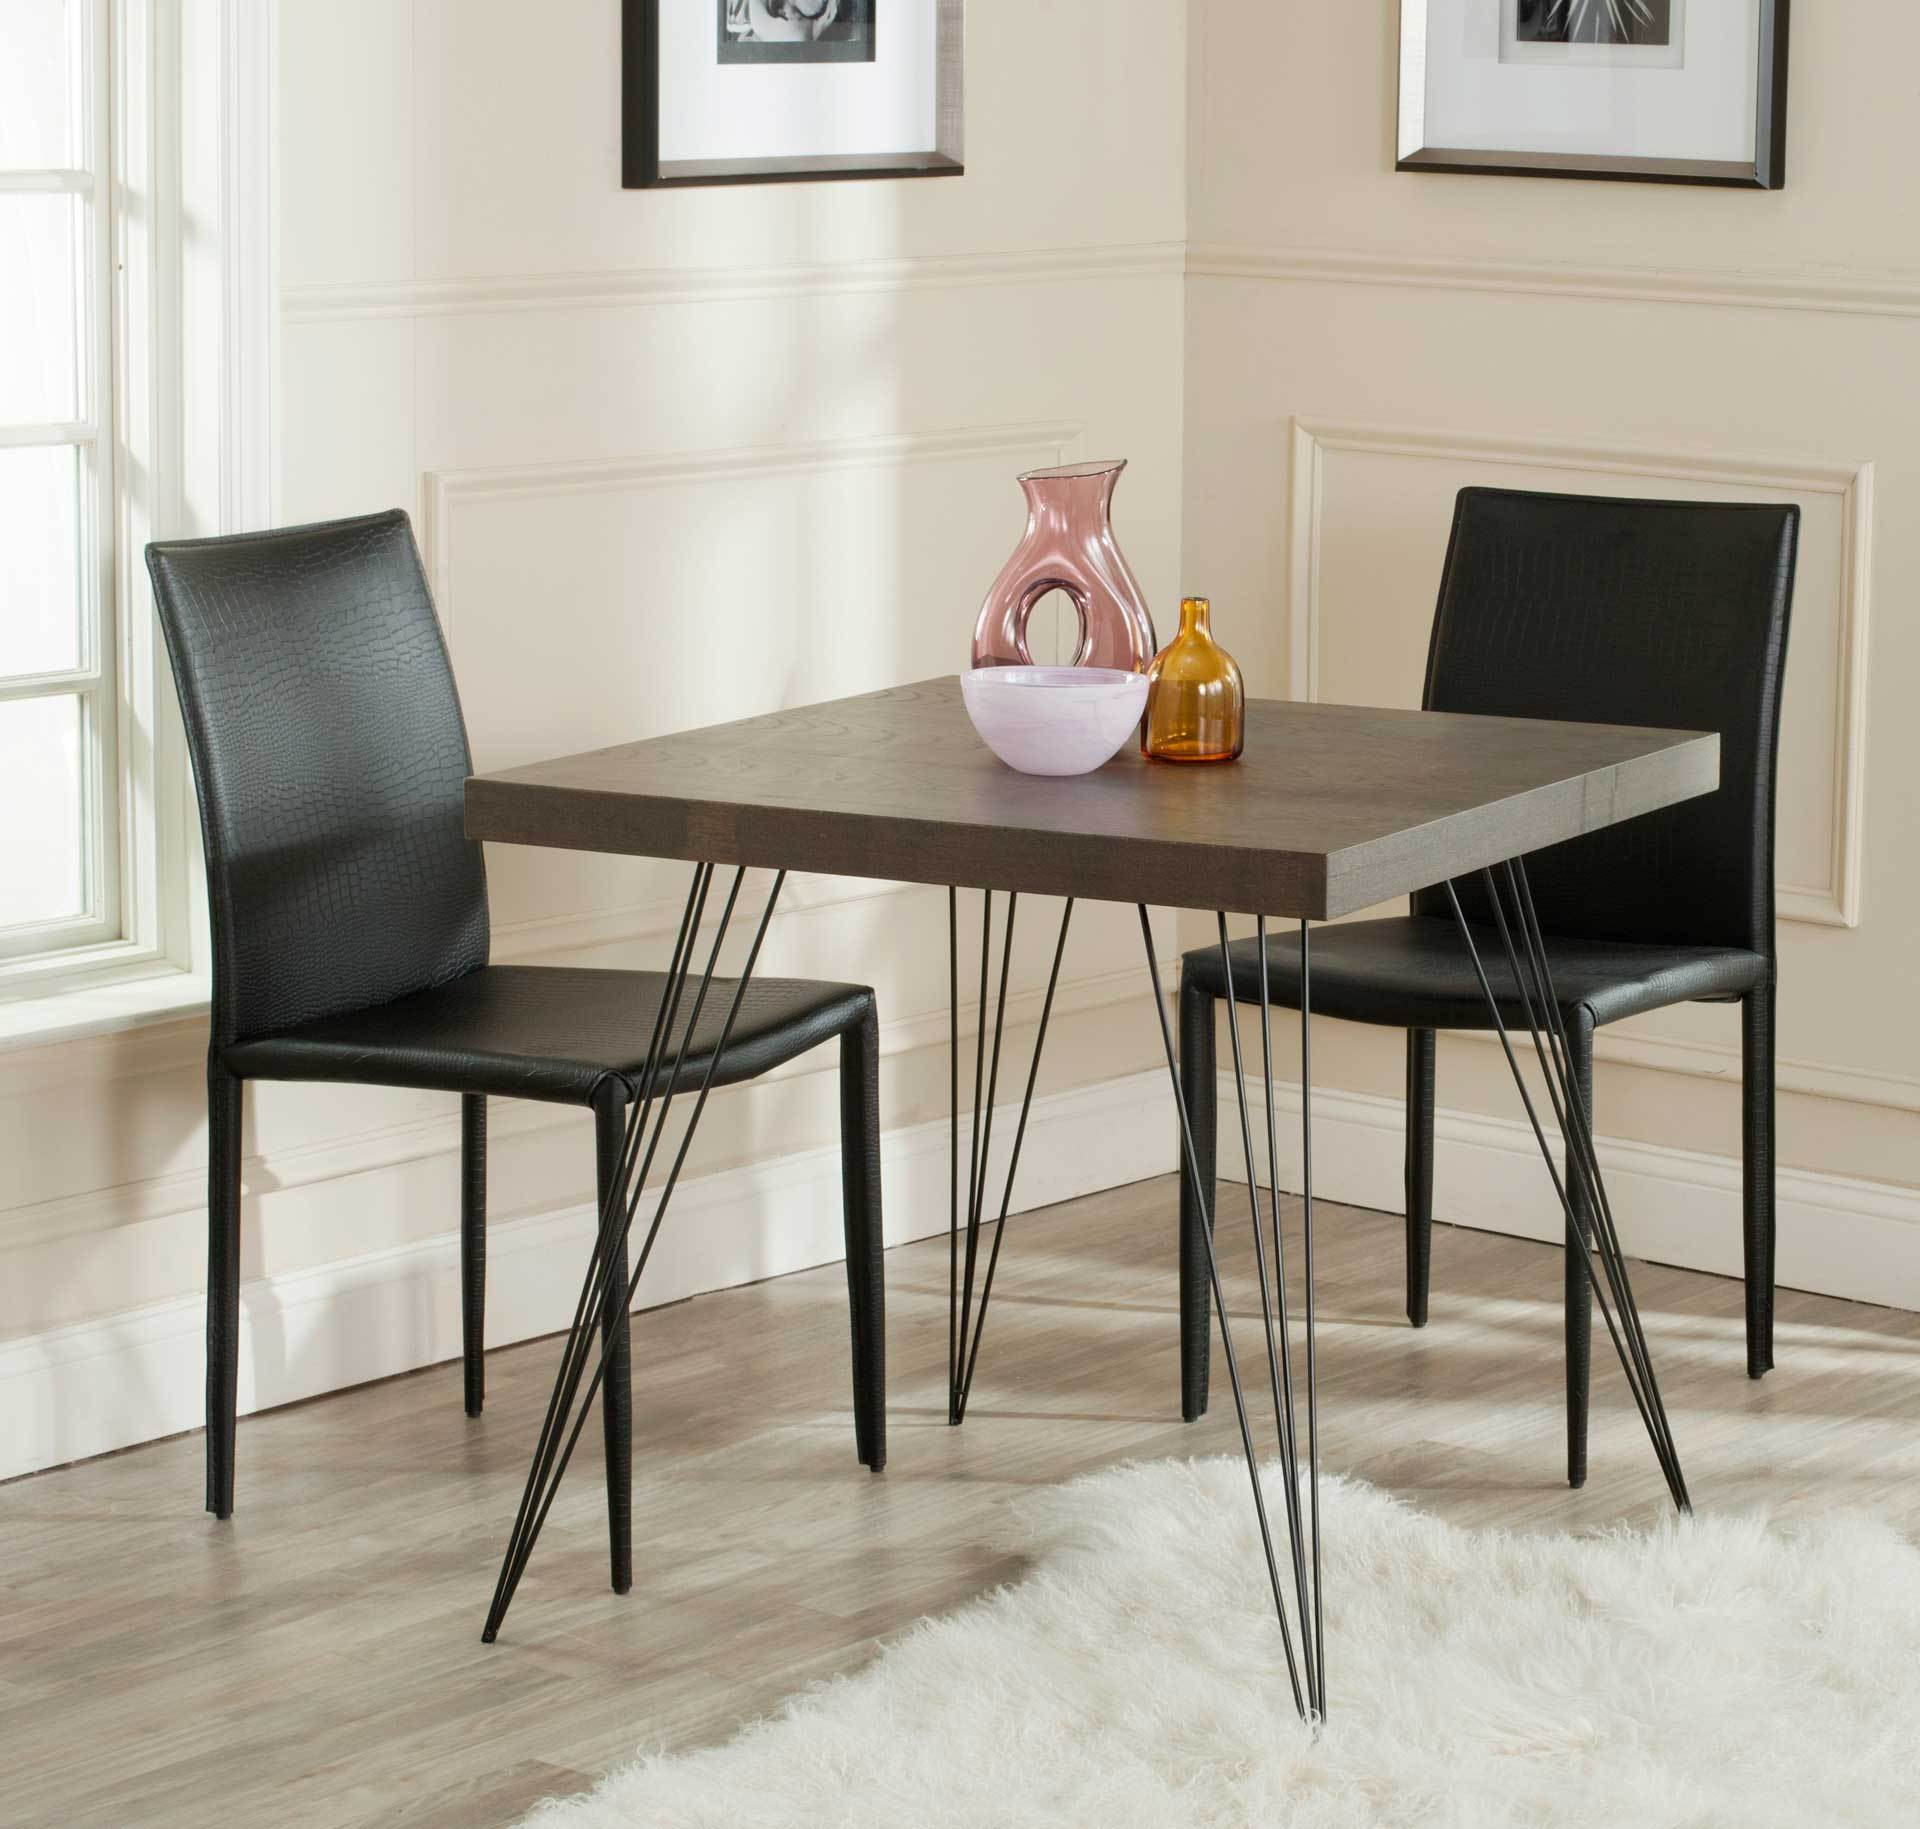 wolcott square wood accent table dark brown froy room brass and marble side ikea kitchen chairs cherry chair sofa tray garden furniture tables console with storage white circle